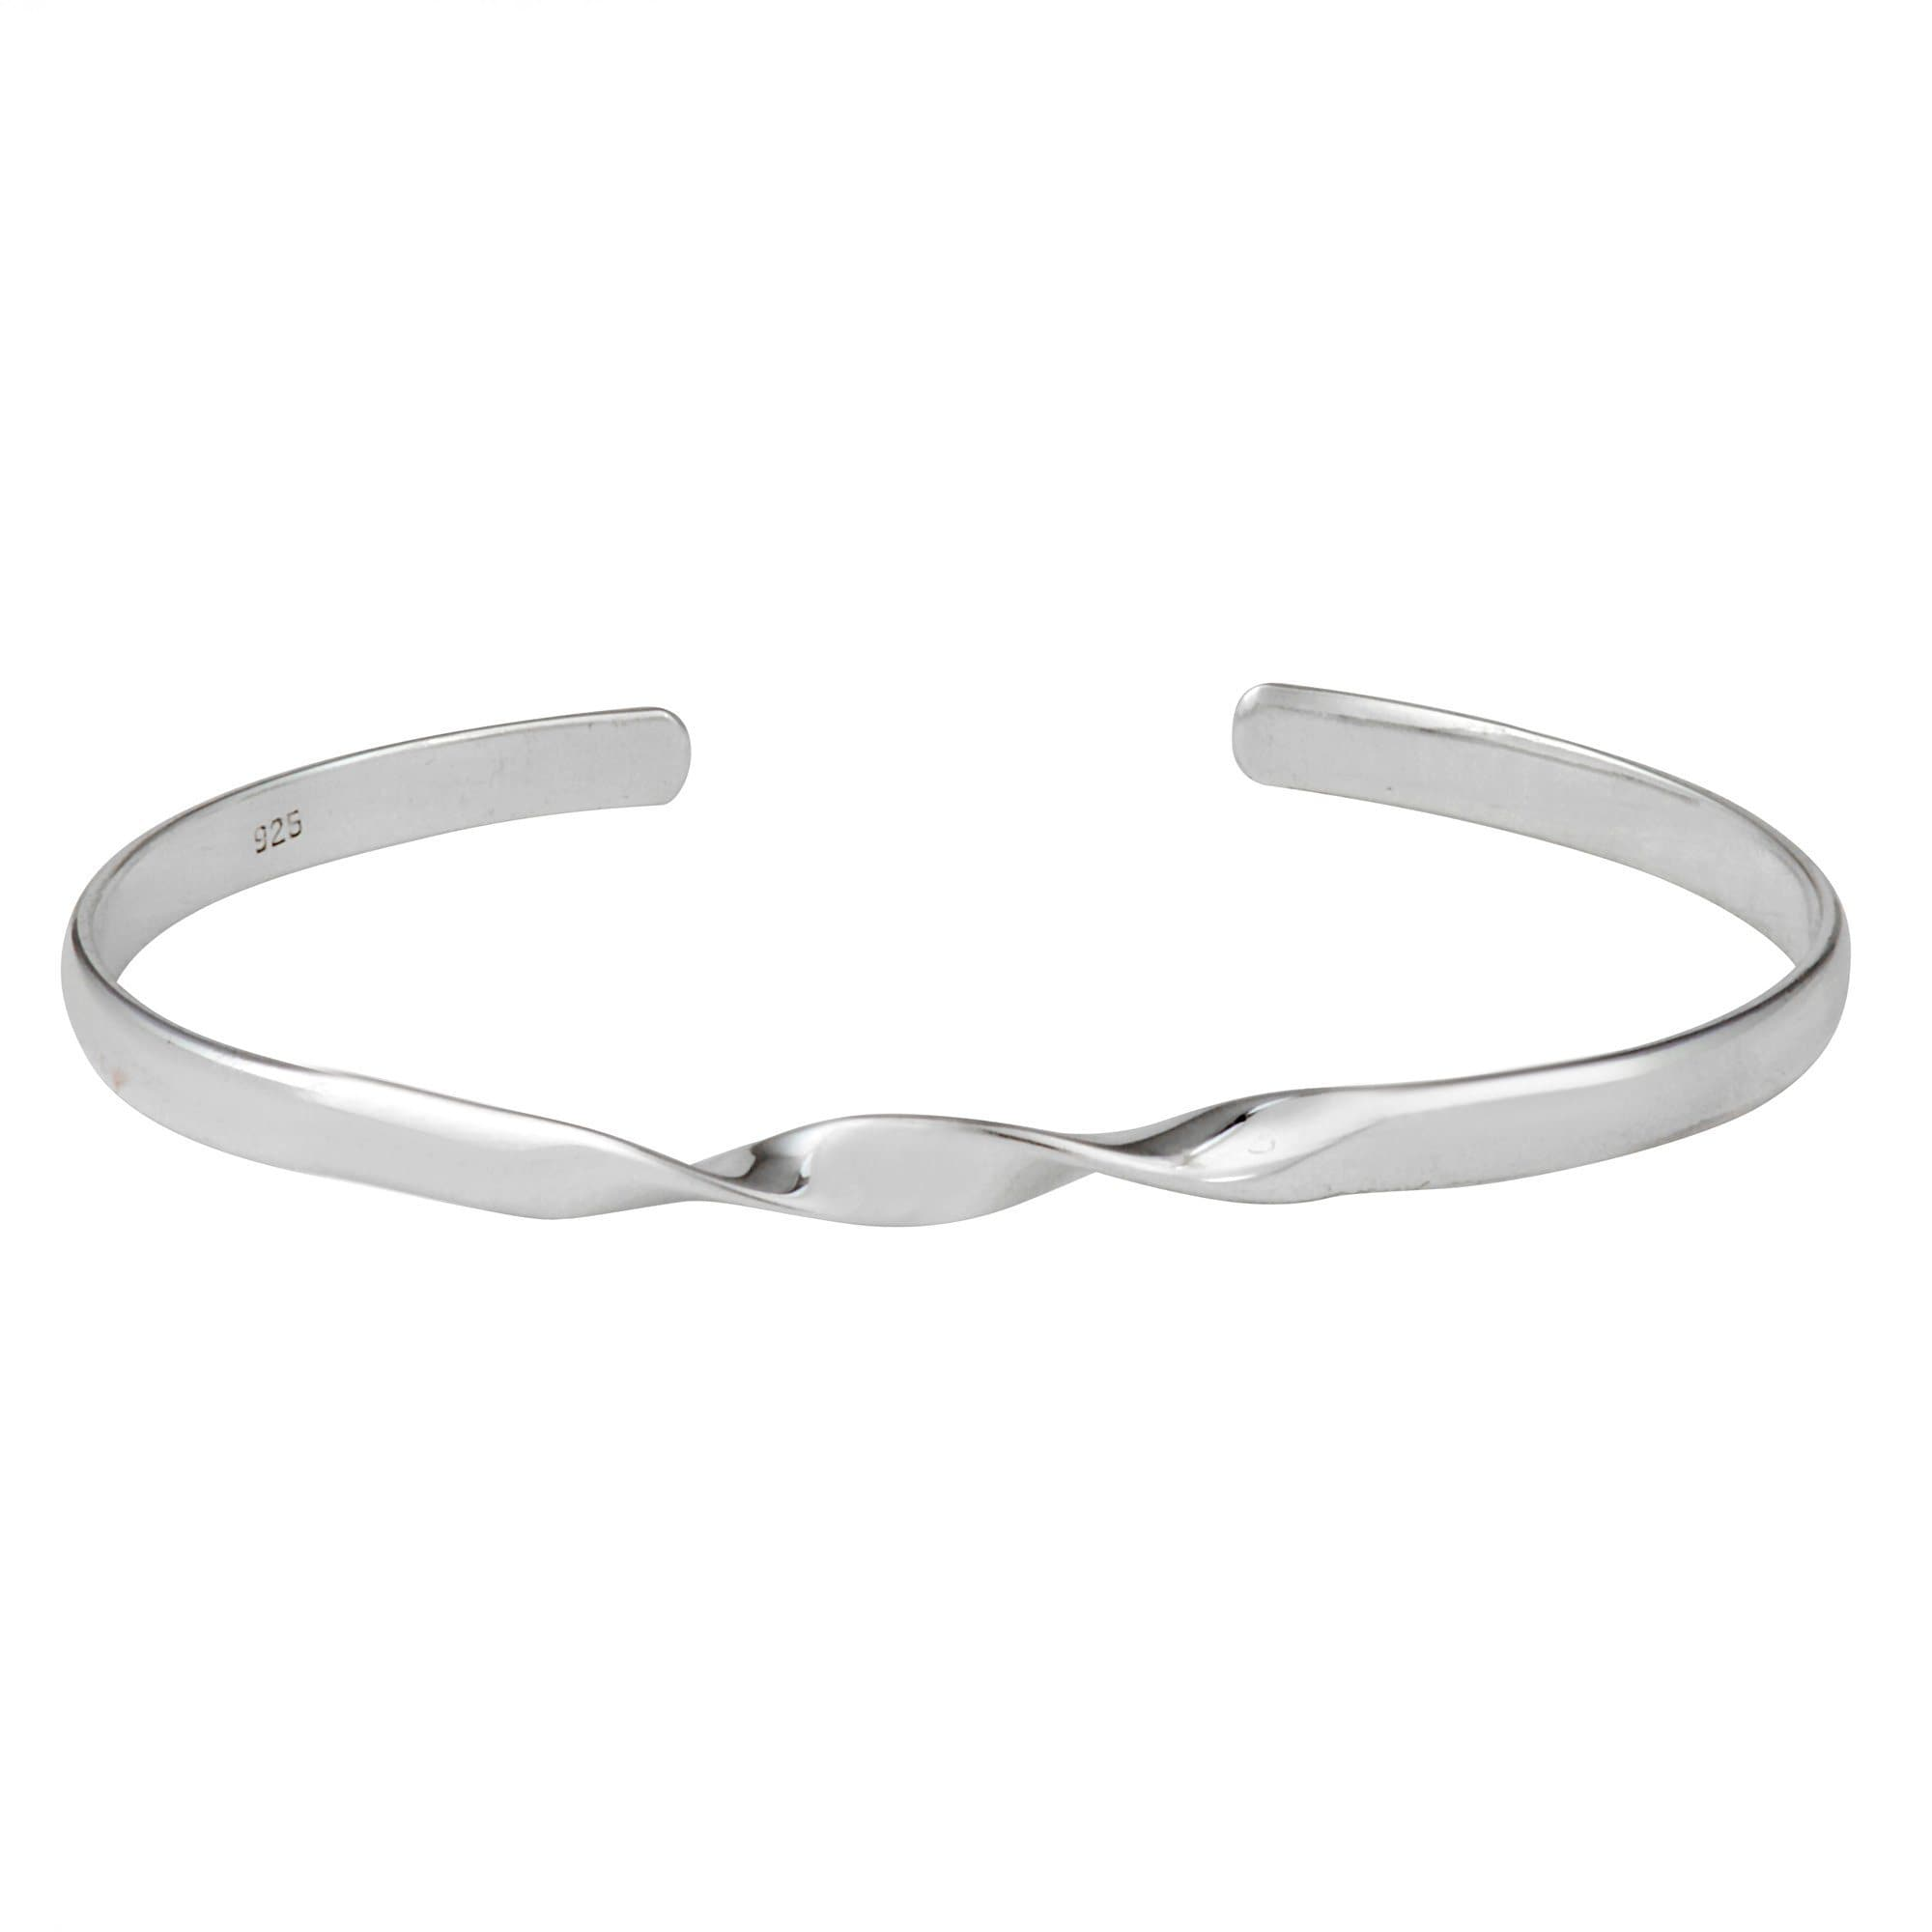 bangles concave curved products hammered silver bangle womens adjustable sterling shape cuff silverly bracelet thick banner simple